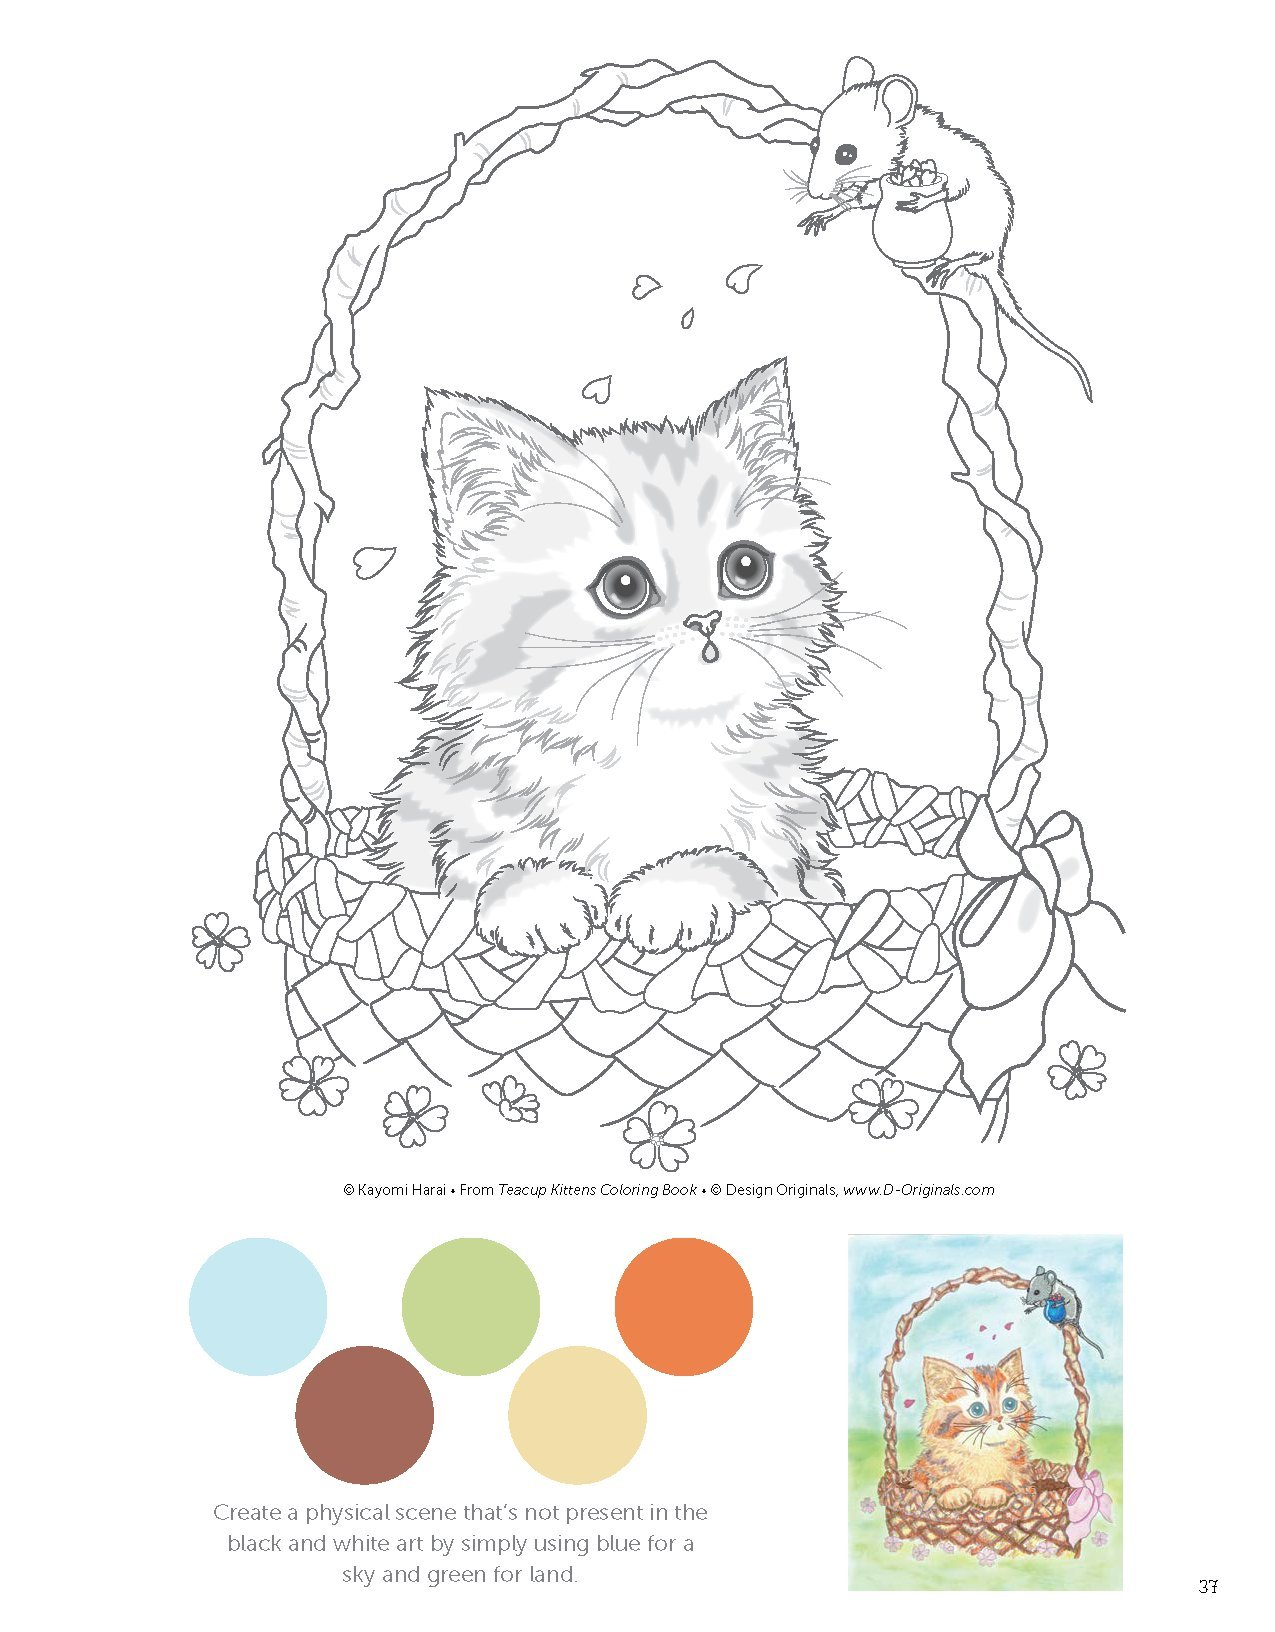 Teacup Kittens Coloring Book Colouring Books Amazoncouk Kayomi Harai 9781497202269